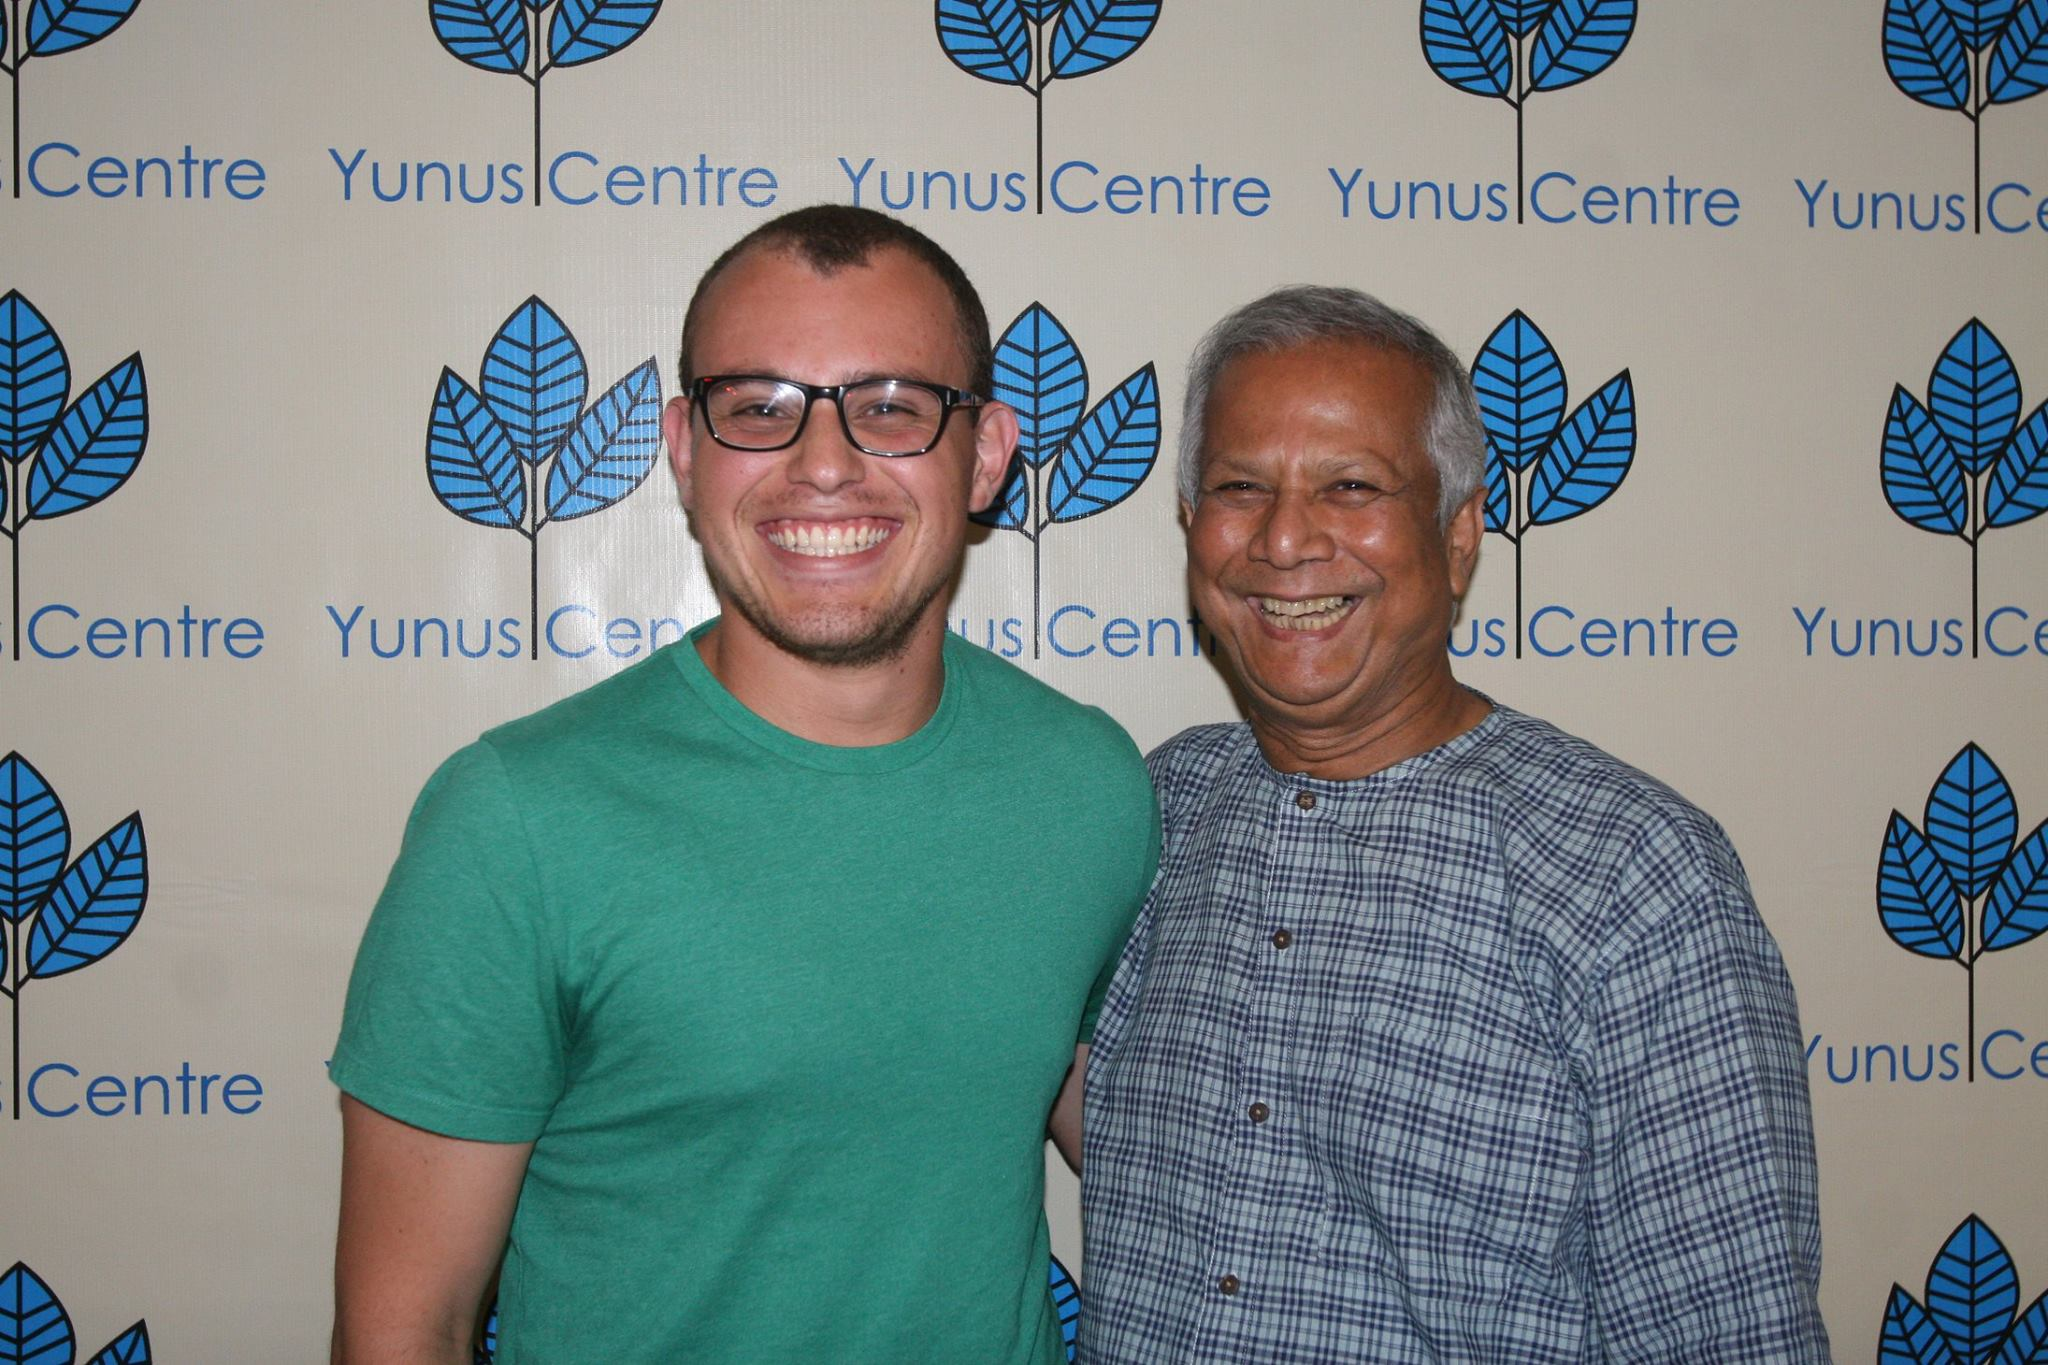 GenDev alumnus Dan Rodriguez and Muhammad Yunus, founder of the Grameen Bank